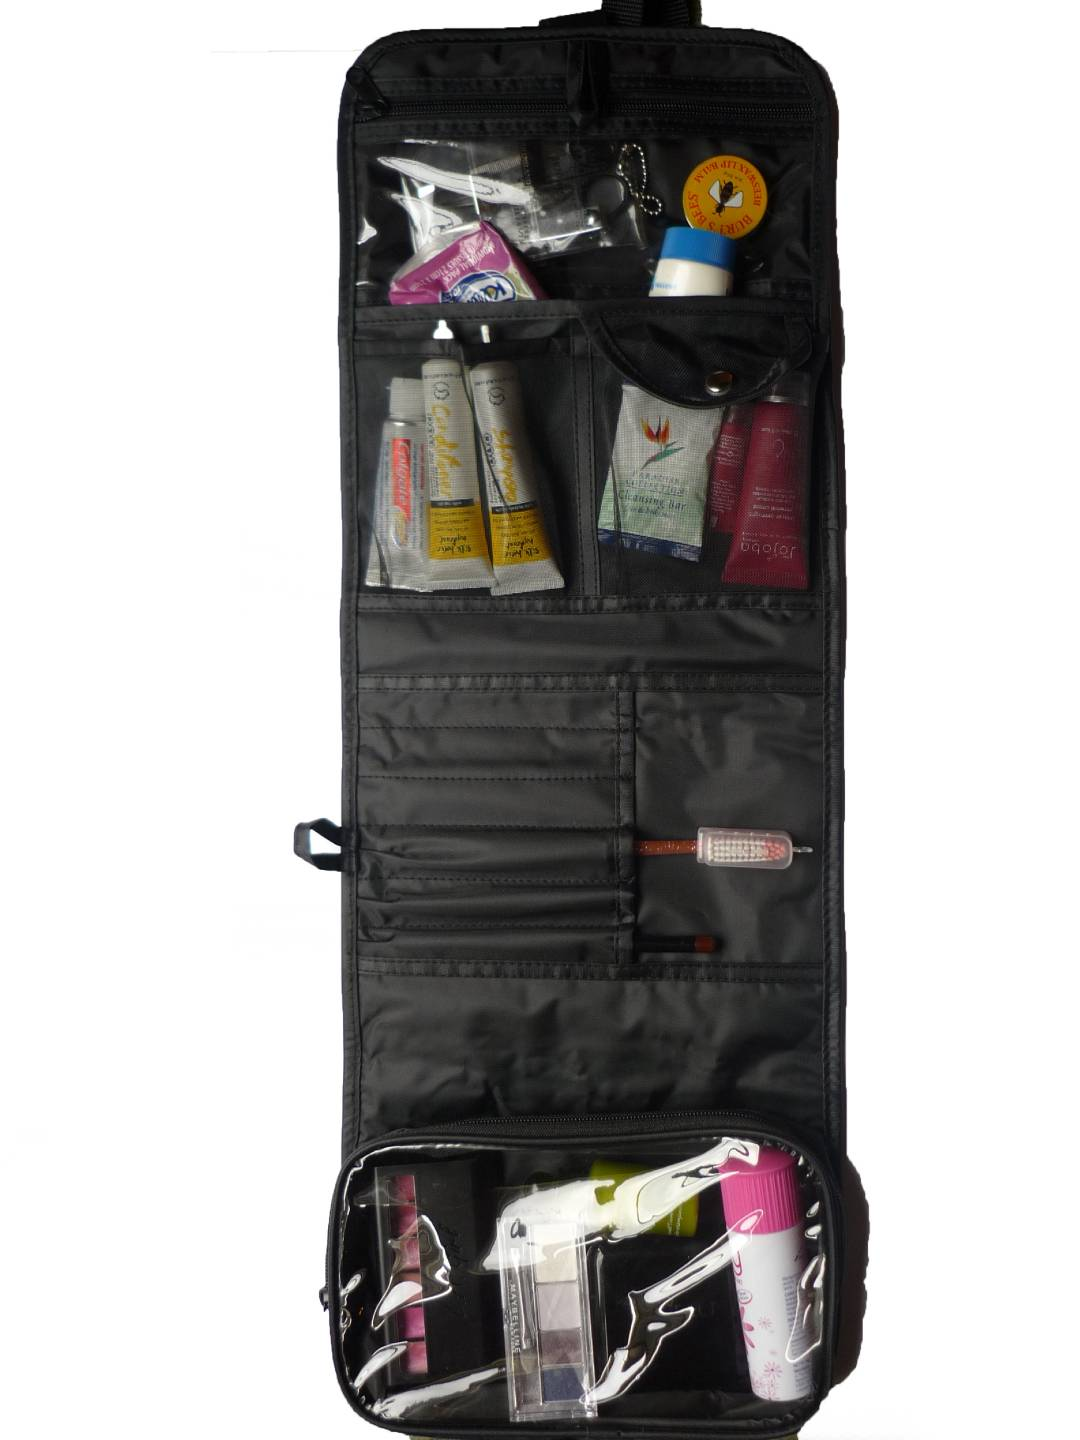 ... -Hanging-Toiletry-Bag-Makeup-Cosmetic-Wash-Case-Large-Organizer-Pouch